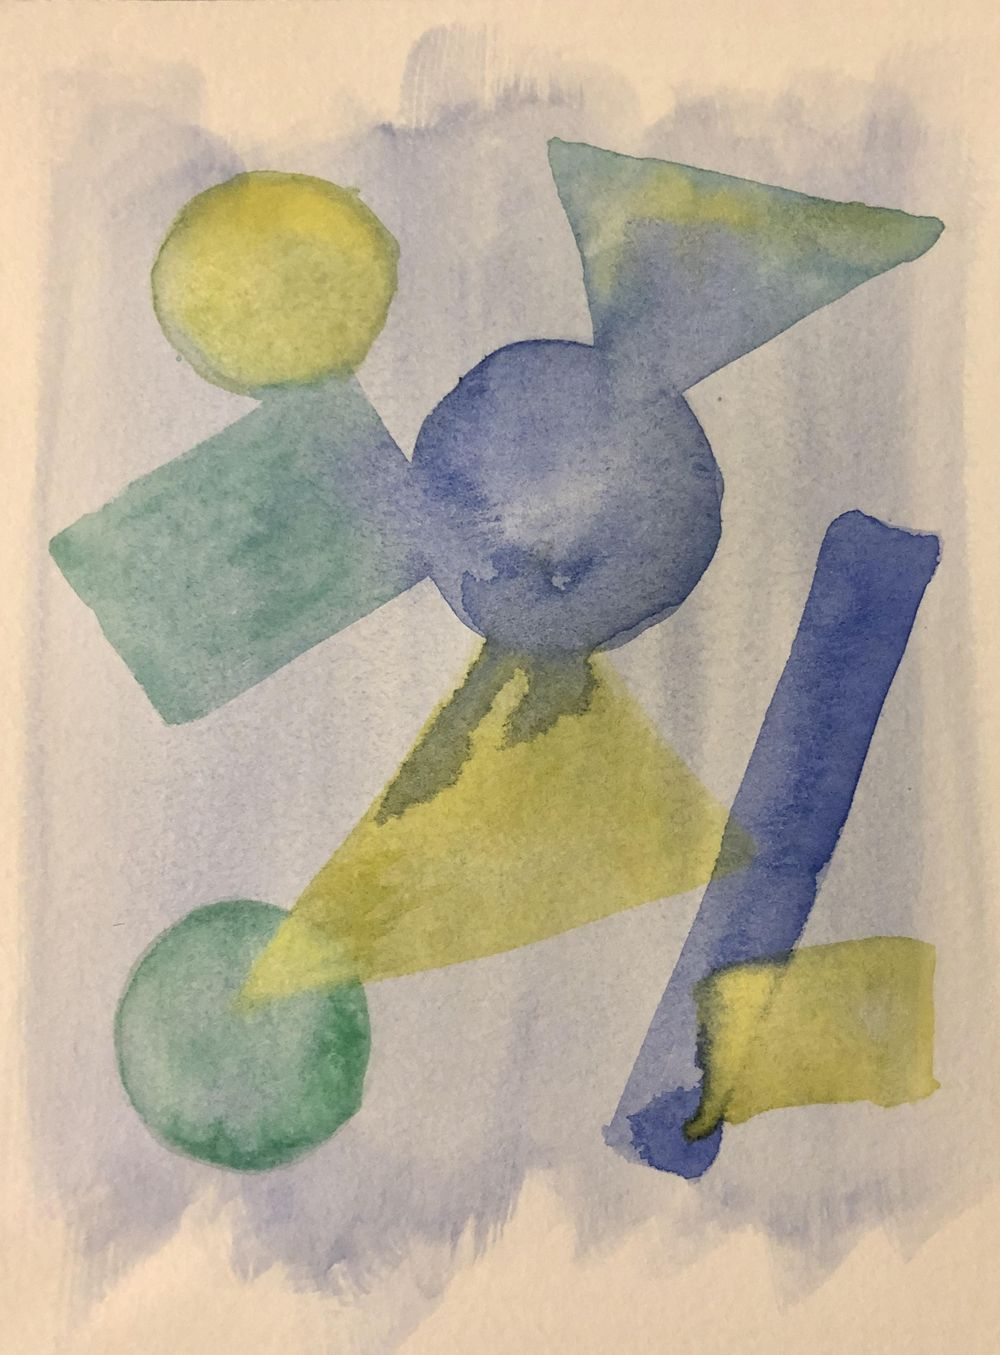 Abstract Watercolor - Shapes - image 3 - student project